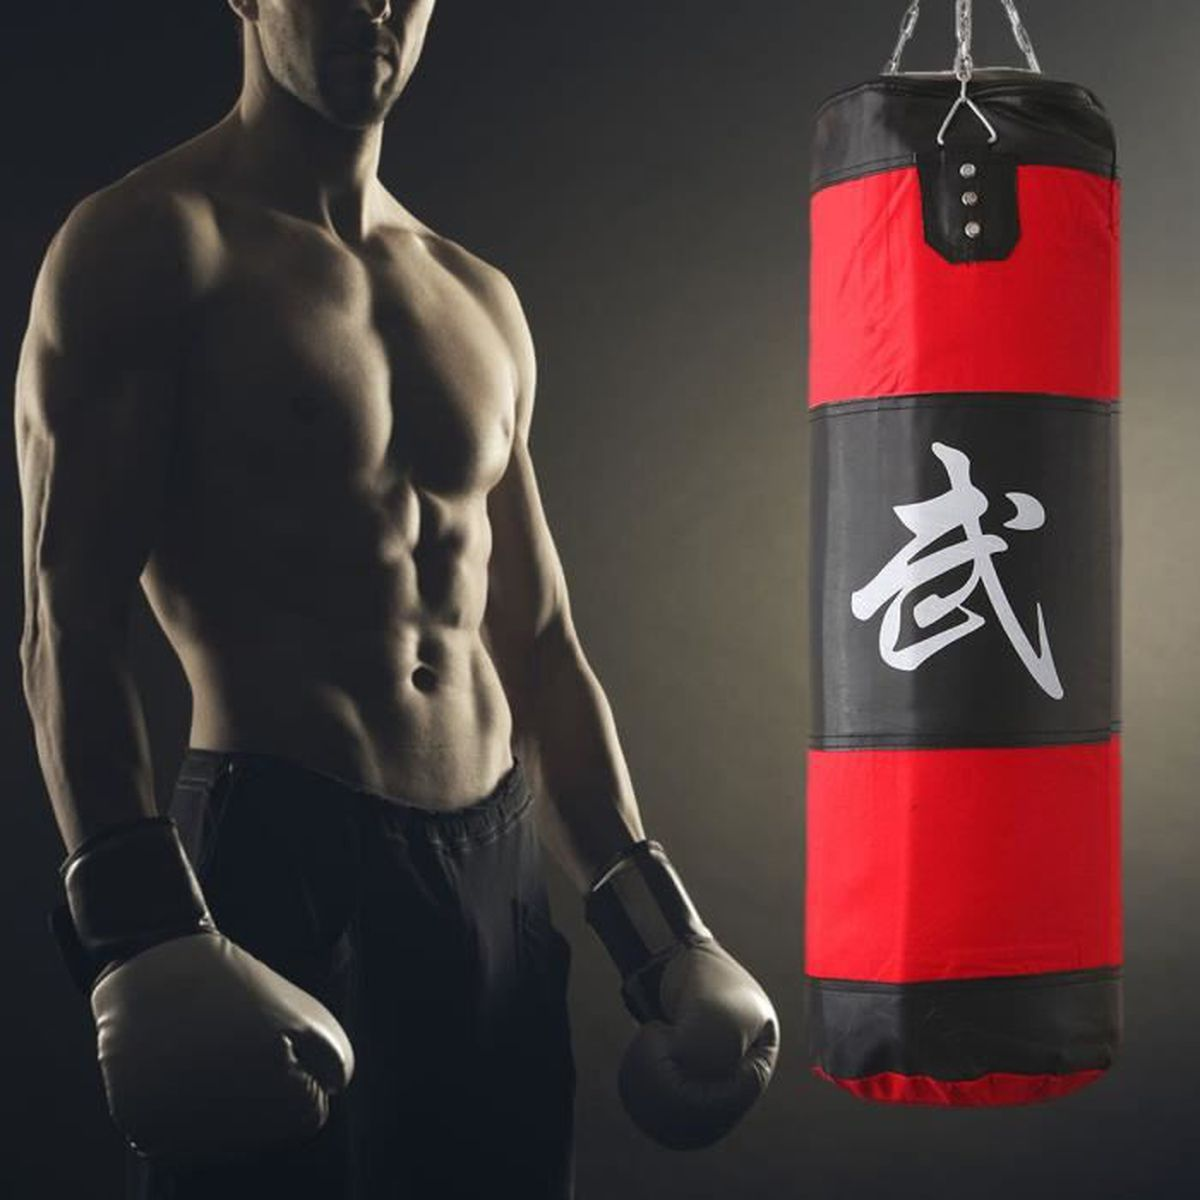 sac de frappe boxing sport fitness combat punching boxe gants crochet wrap prix pas cher. Black Bedroom Furniture Sets. Home Design Ideas